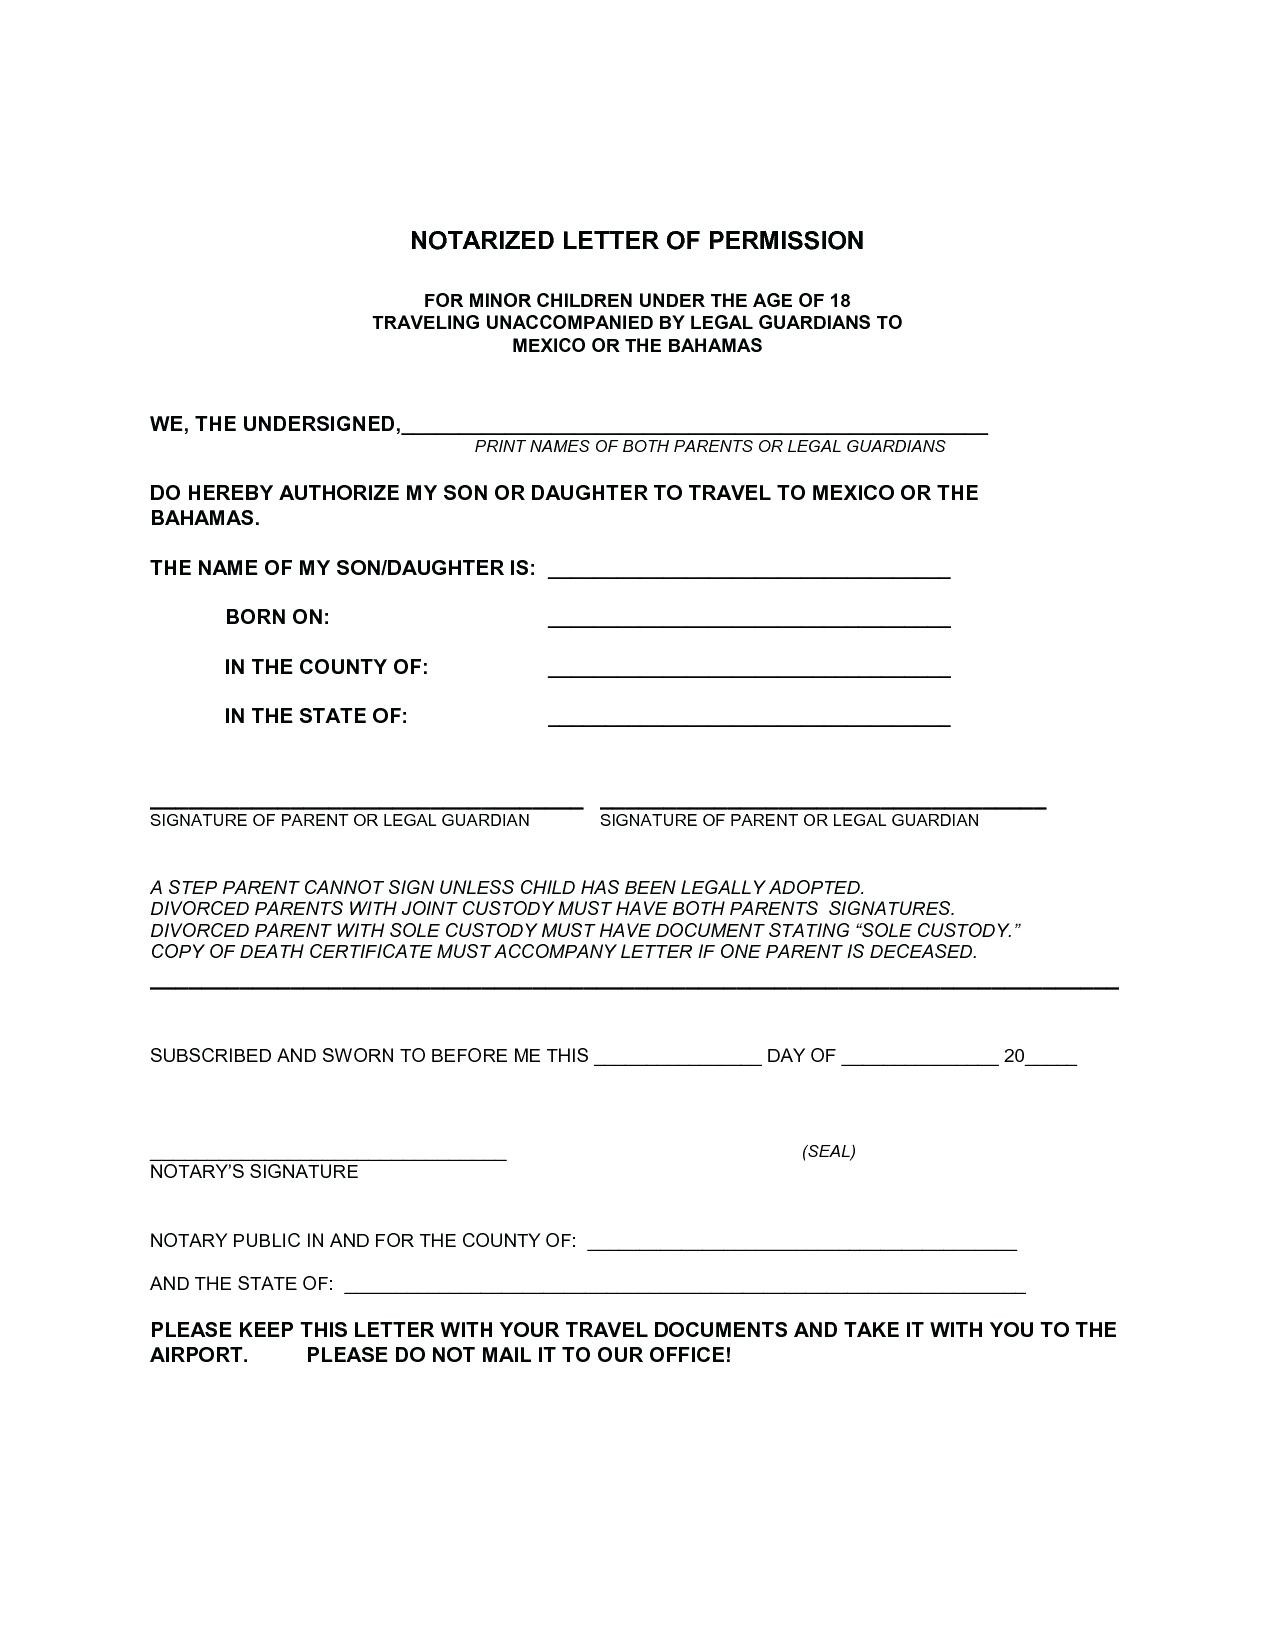 Creditor Cease and Desist Letter Template - Debt Collection Cease and Desist Letter Template Copy Jury Duty